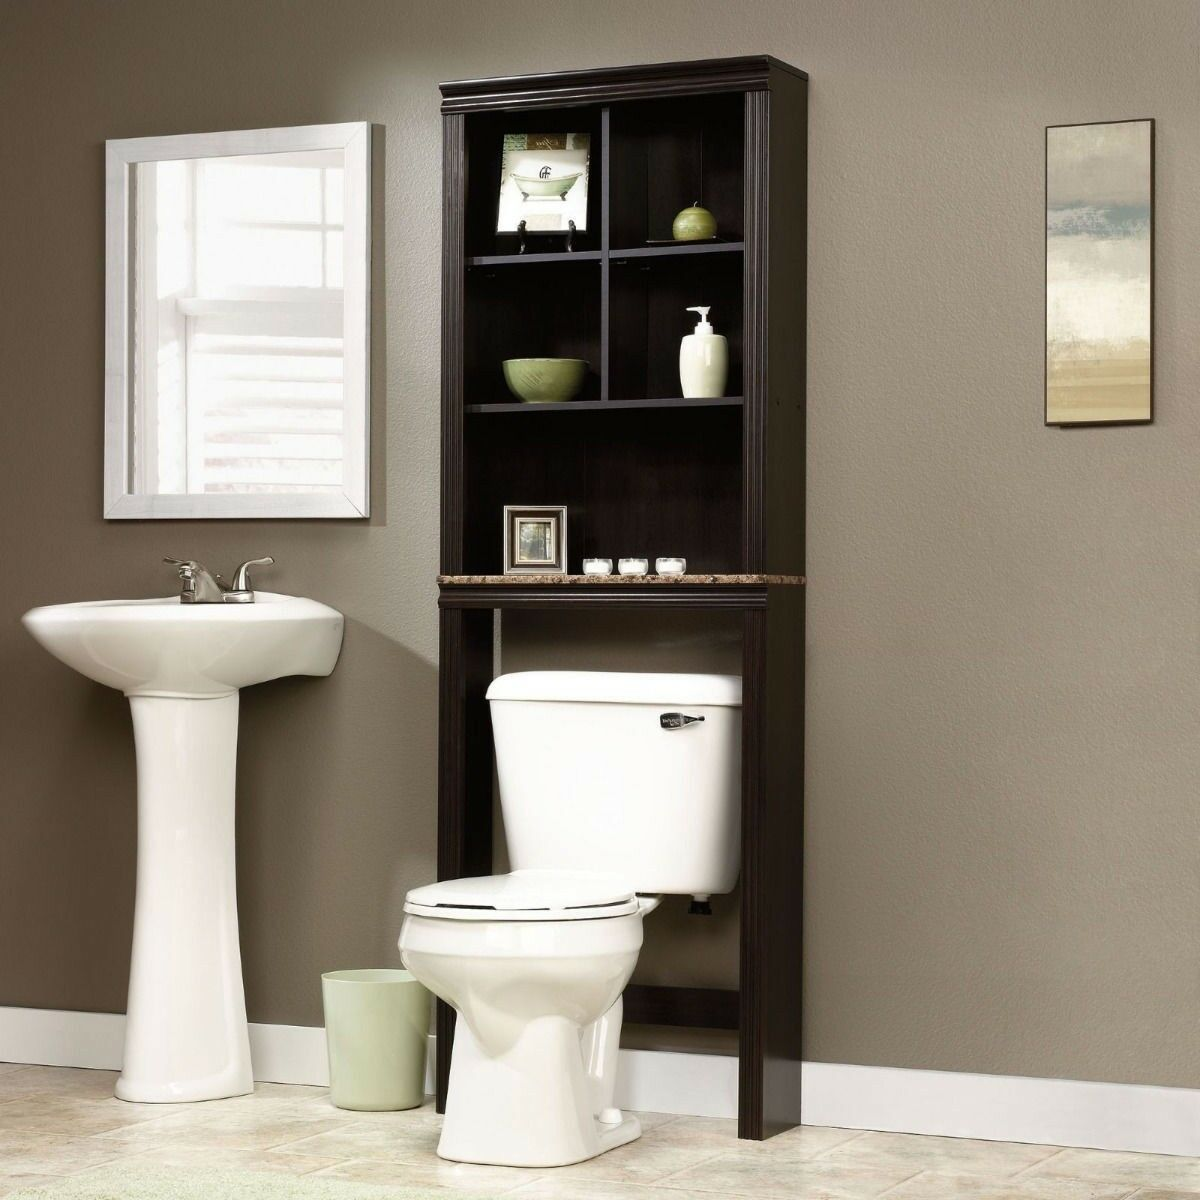 Bathroom Cabinet Over Toilet Shelf E Saver Storage Adjule Shelves Towels